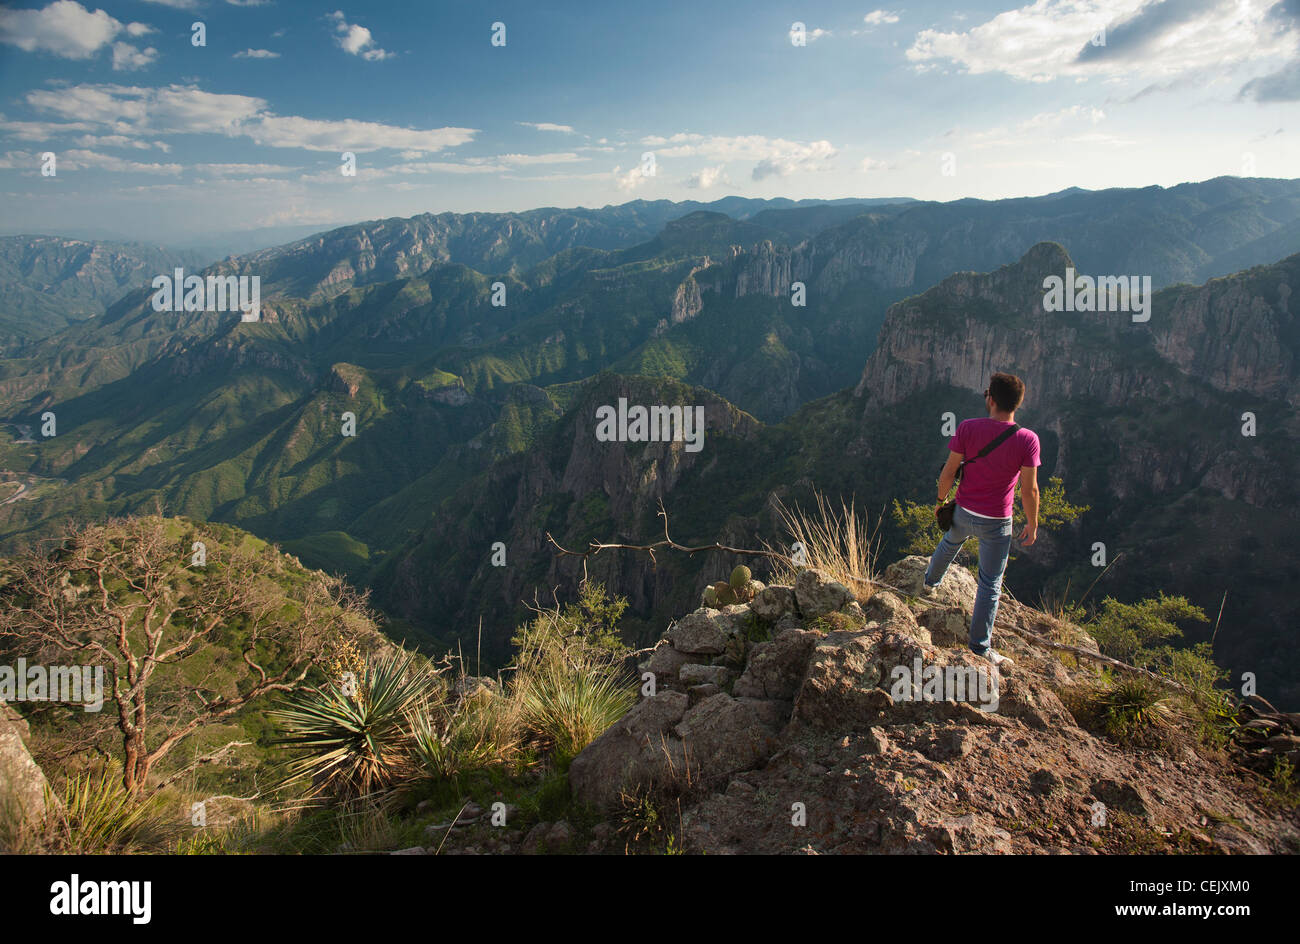 A man standing on the ridge of a cliff at the Copper Canyon in the region of Cerocahui, Chihuahua  Mexico. - Stock Image